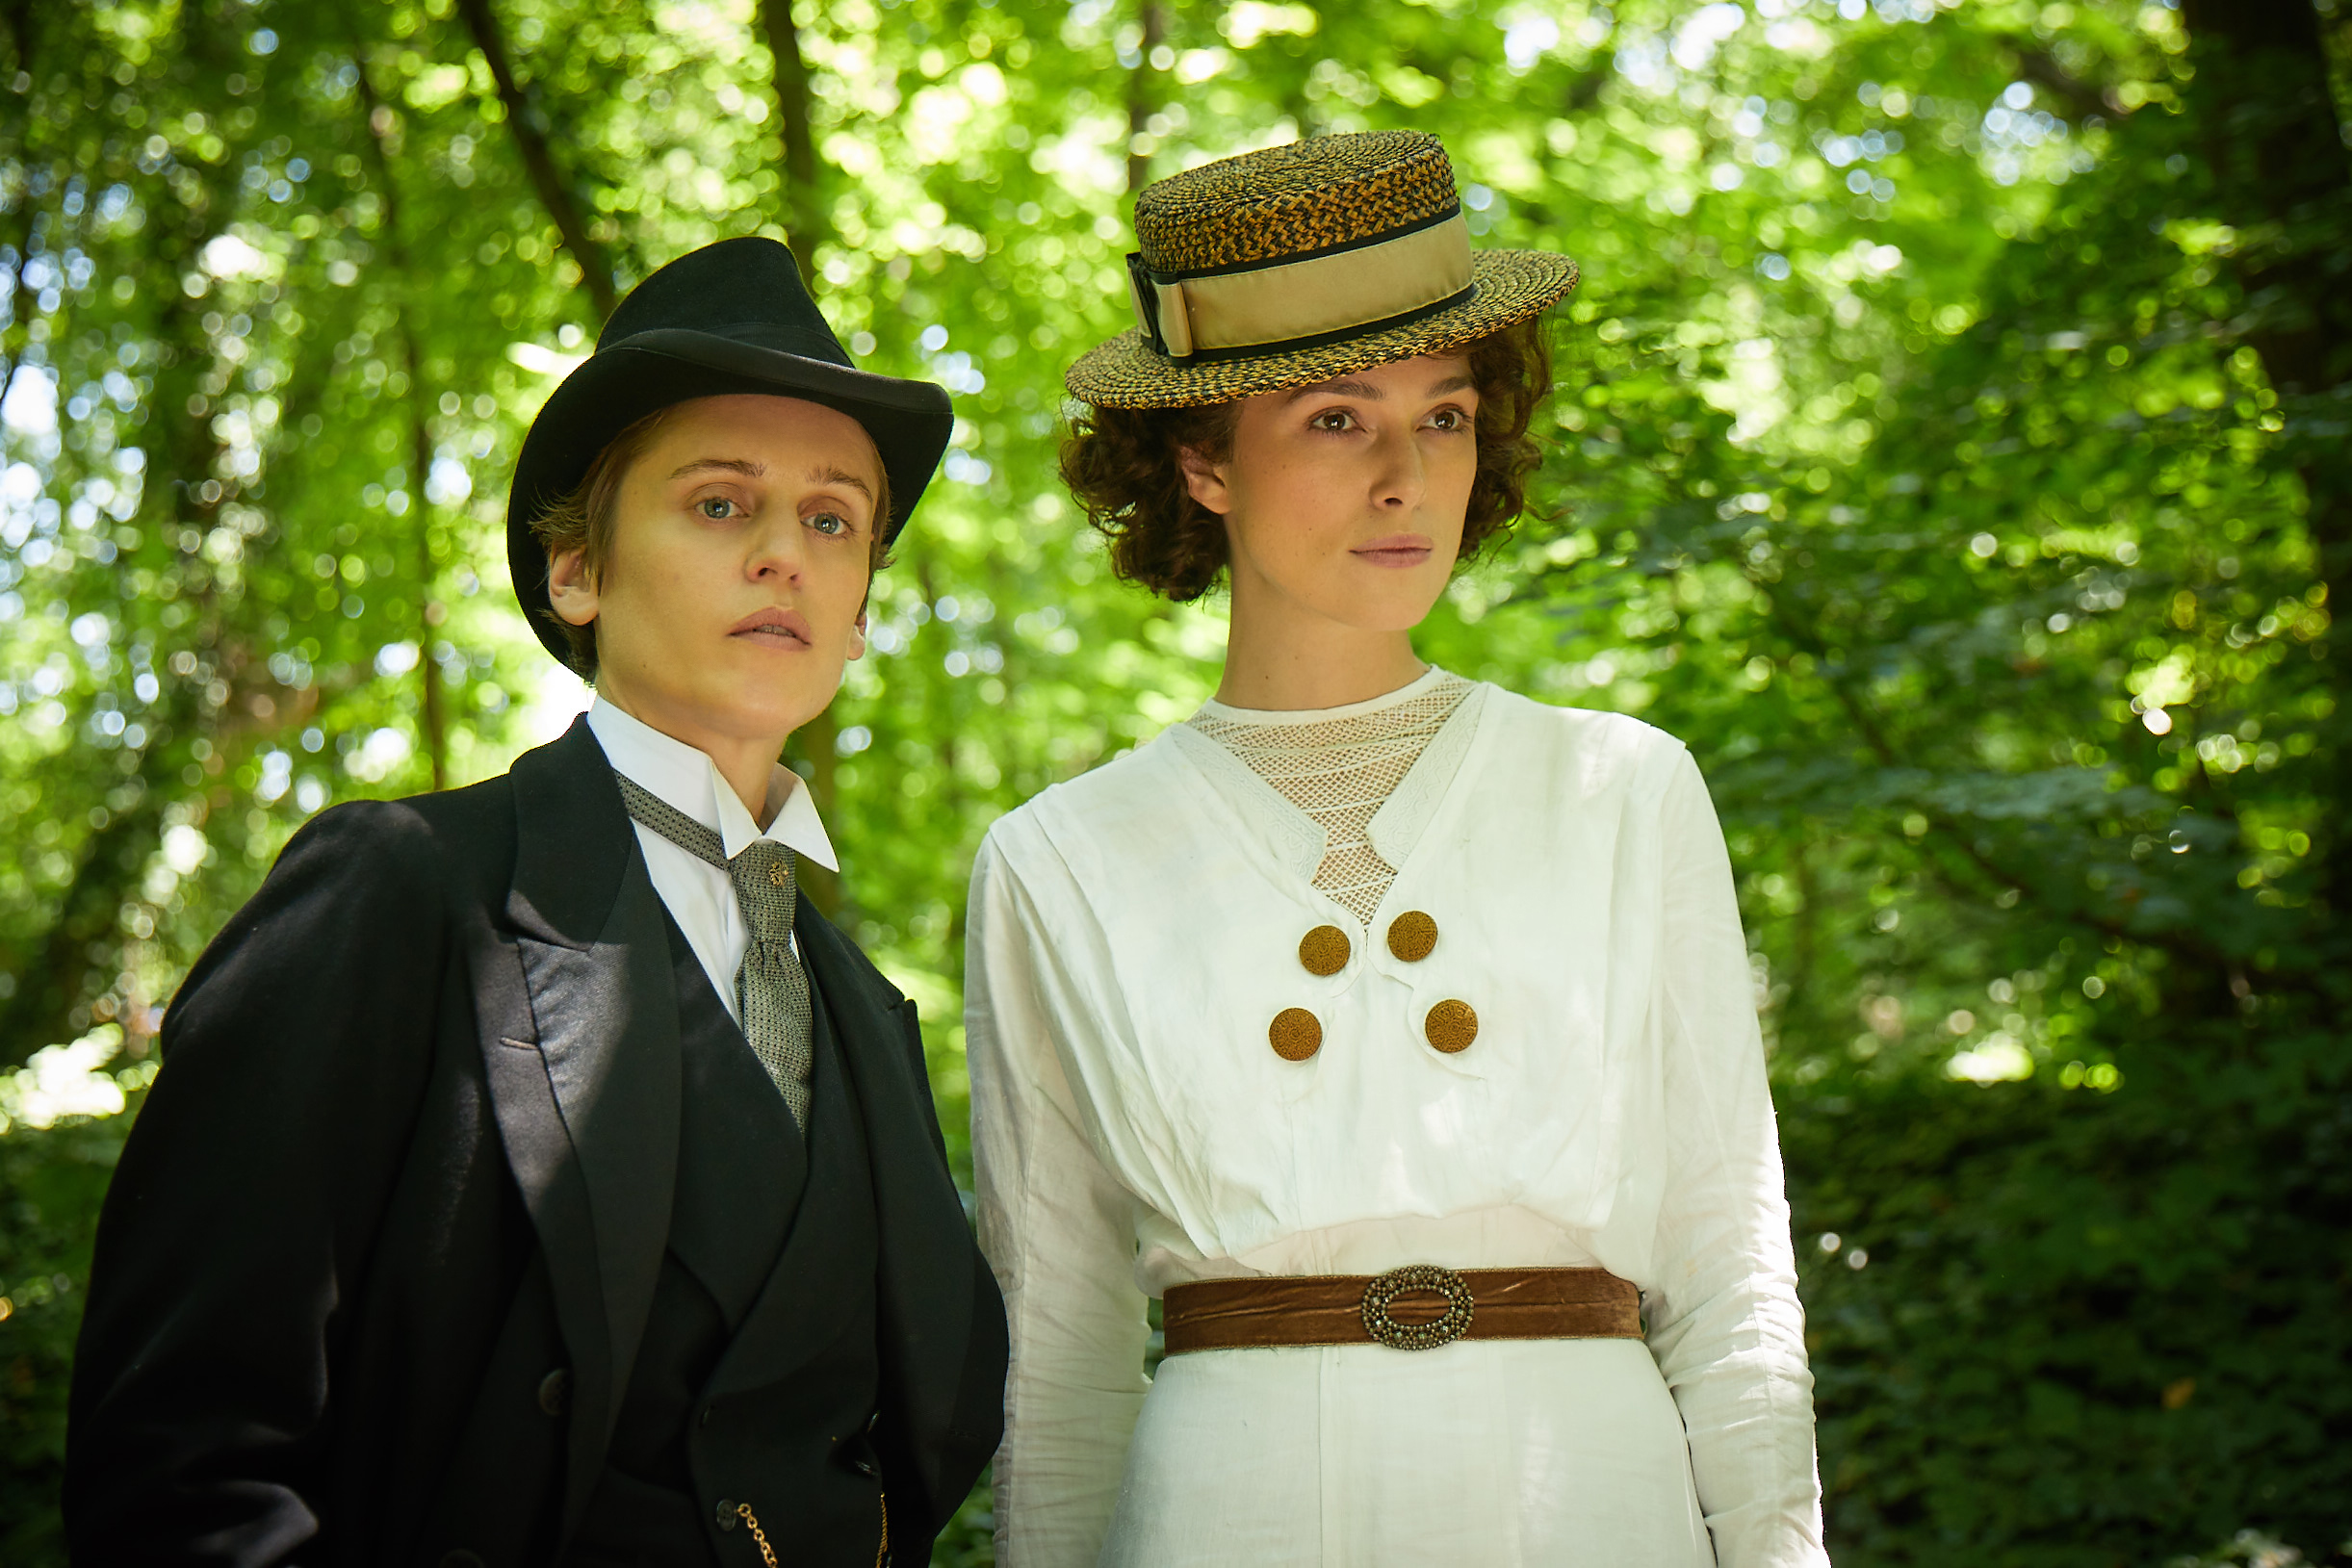 Denise Gough plays Missy, the longtime love interest of Colette (Keira Knightley)